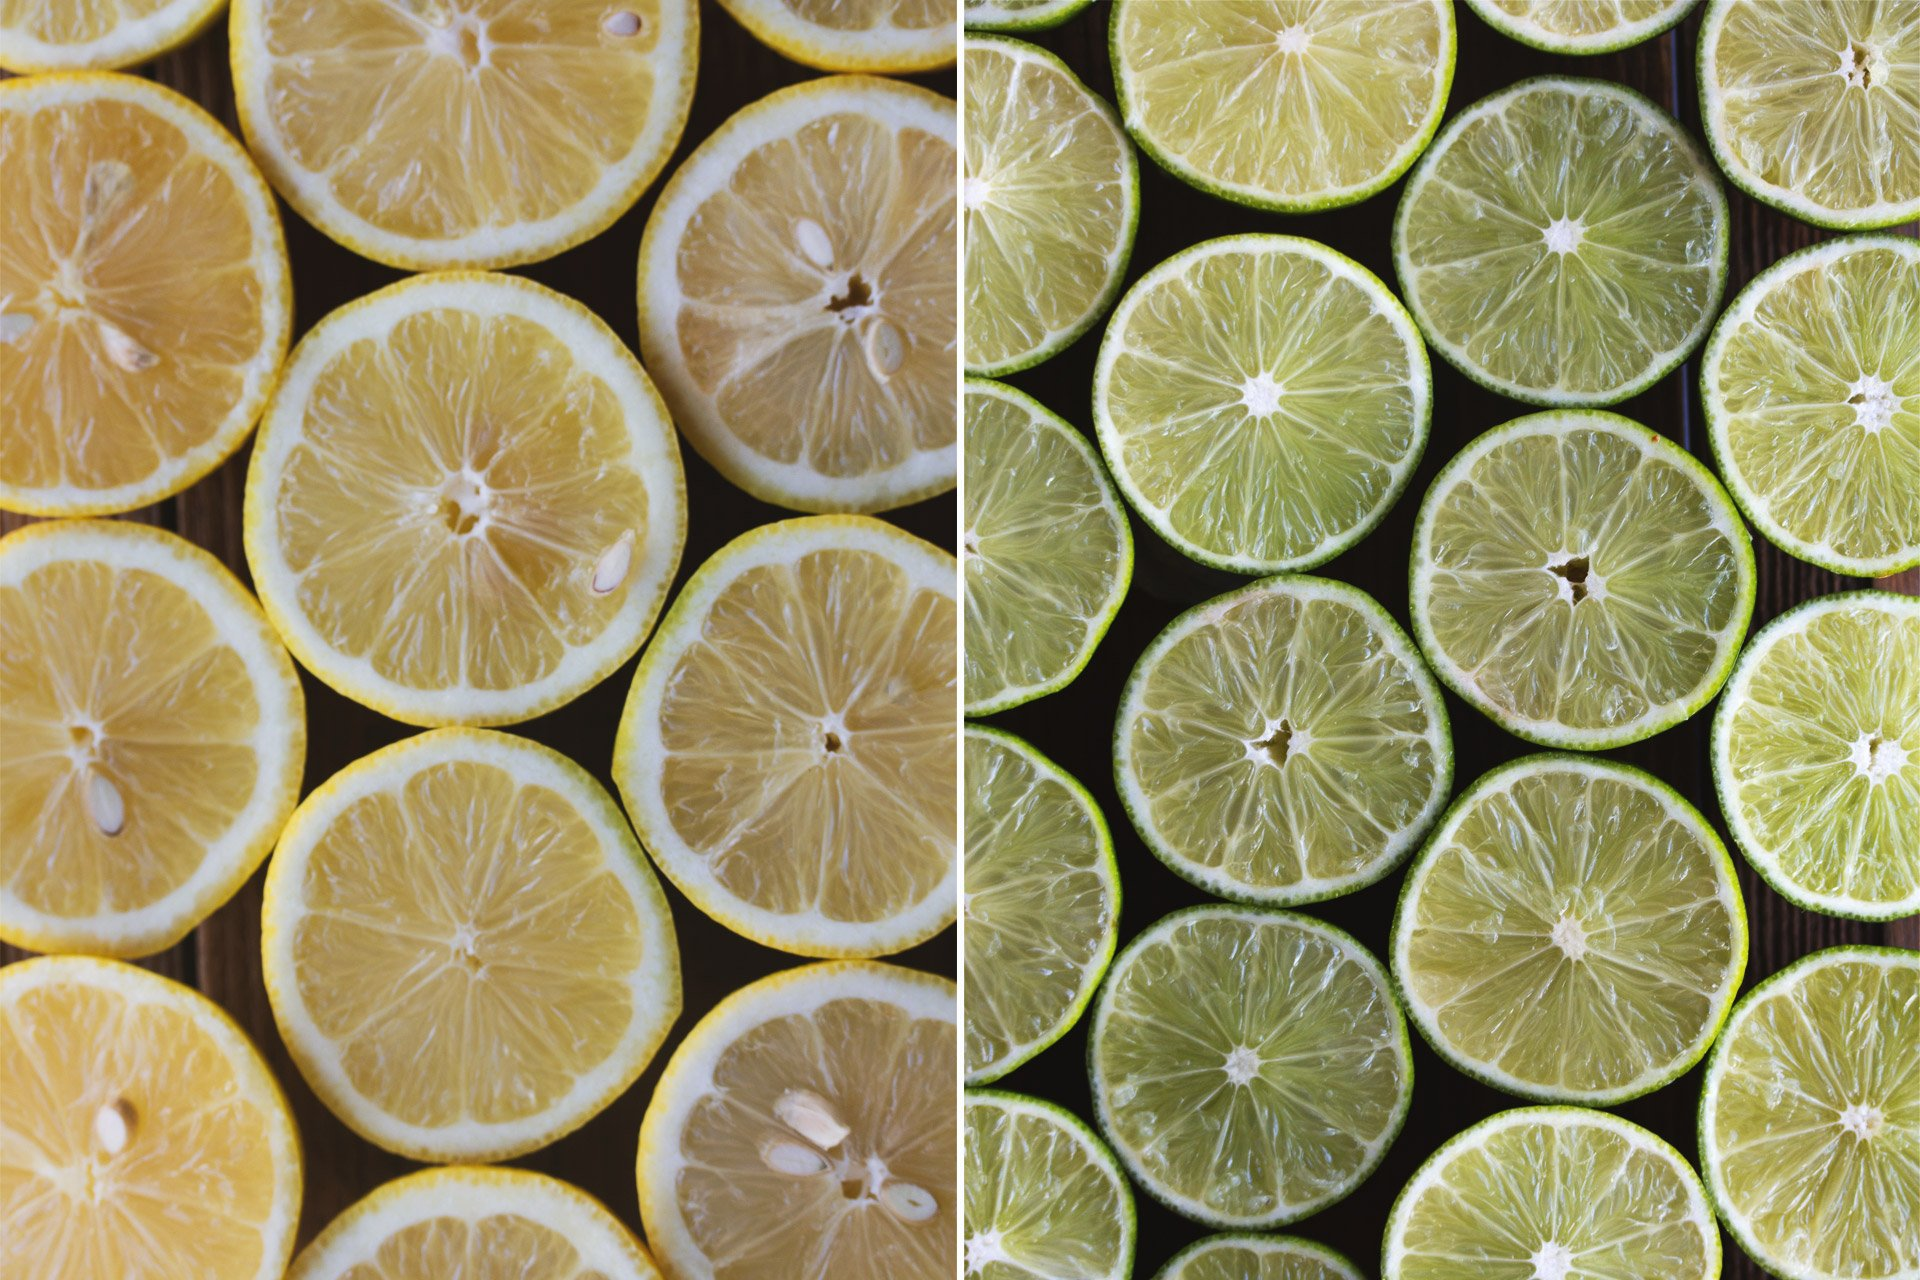 Lemons and Limes by HonestlyYUM